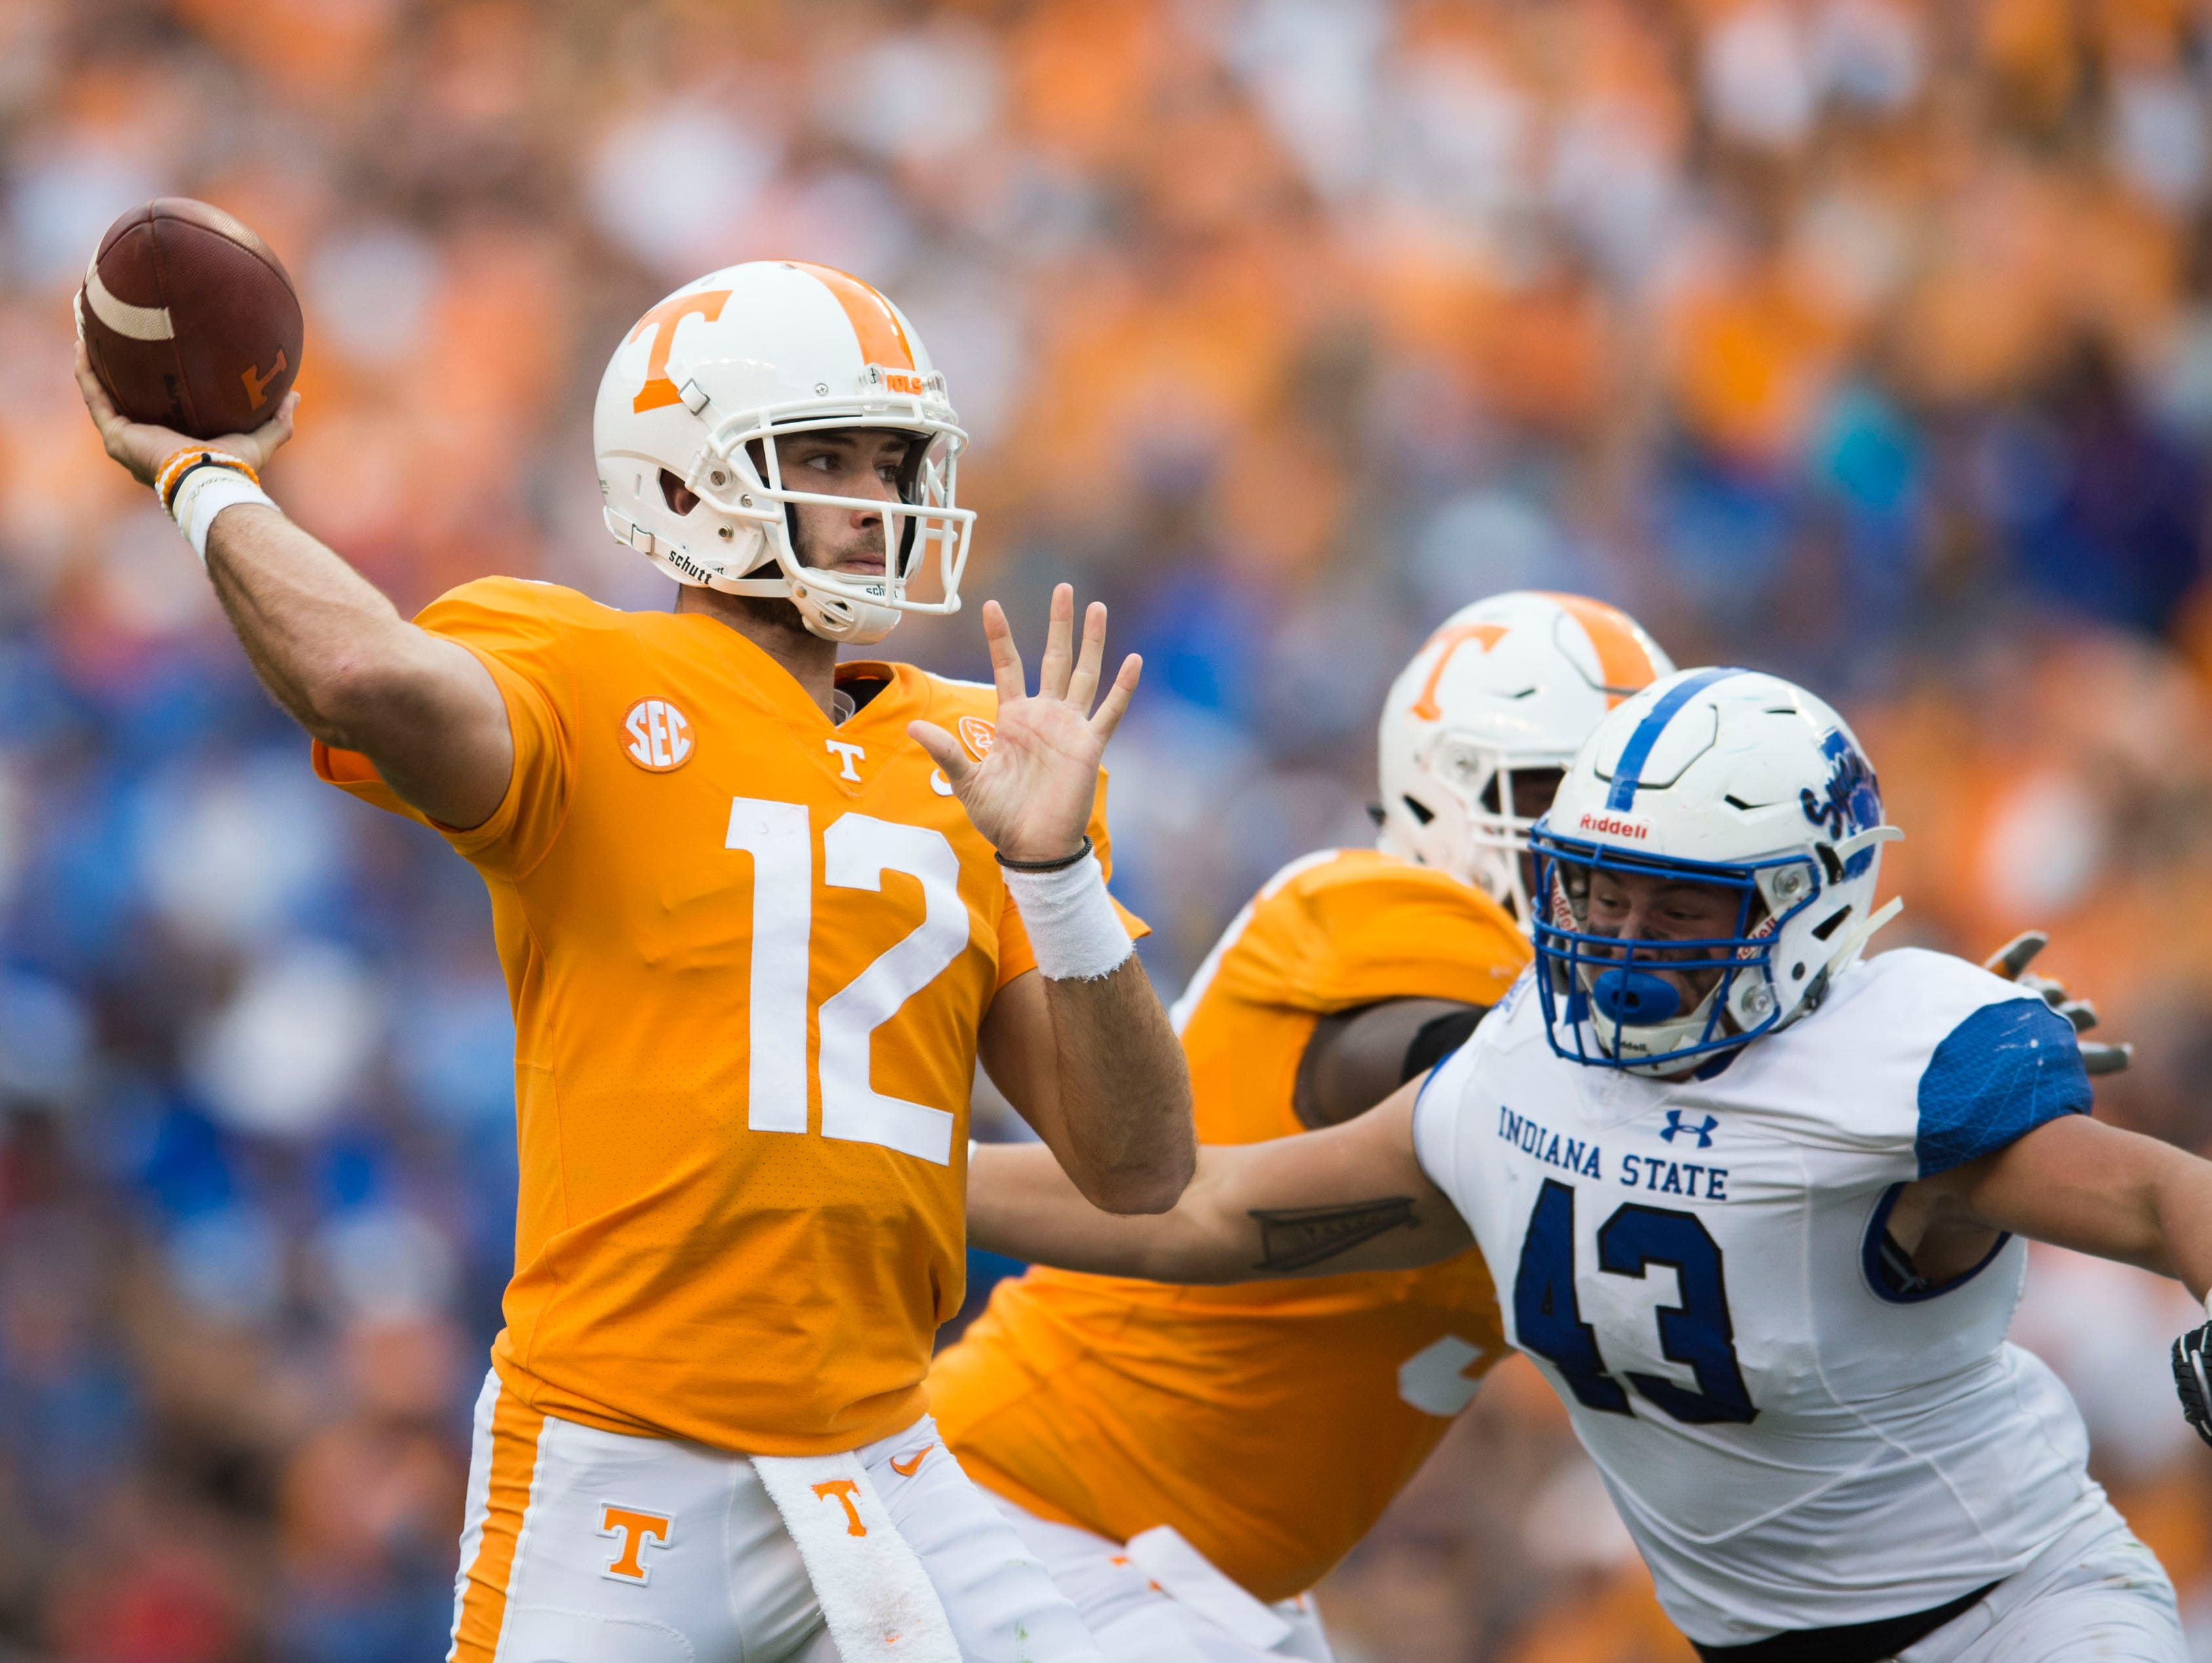 Tennessee quarterback Quinten Dormady (12) prepares to throw a ball as Indiana State linebacker Raymone Clifford (43) attempts to sack him during the Tennessee Volunteers vs. Indiana State Sycamores game at Neyland Stadium in Knoxville, Tenn. Saturday, Sept. 9, 2017.